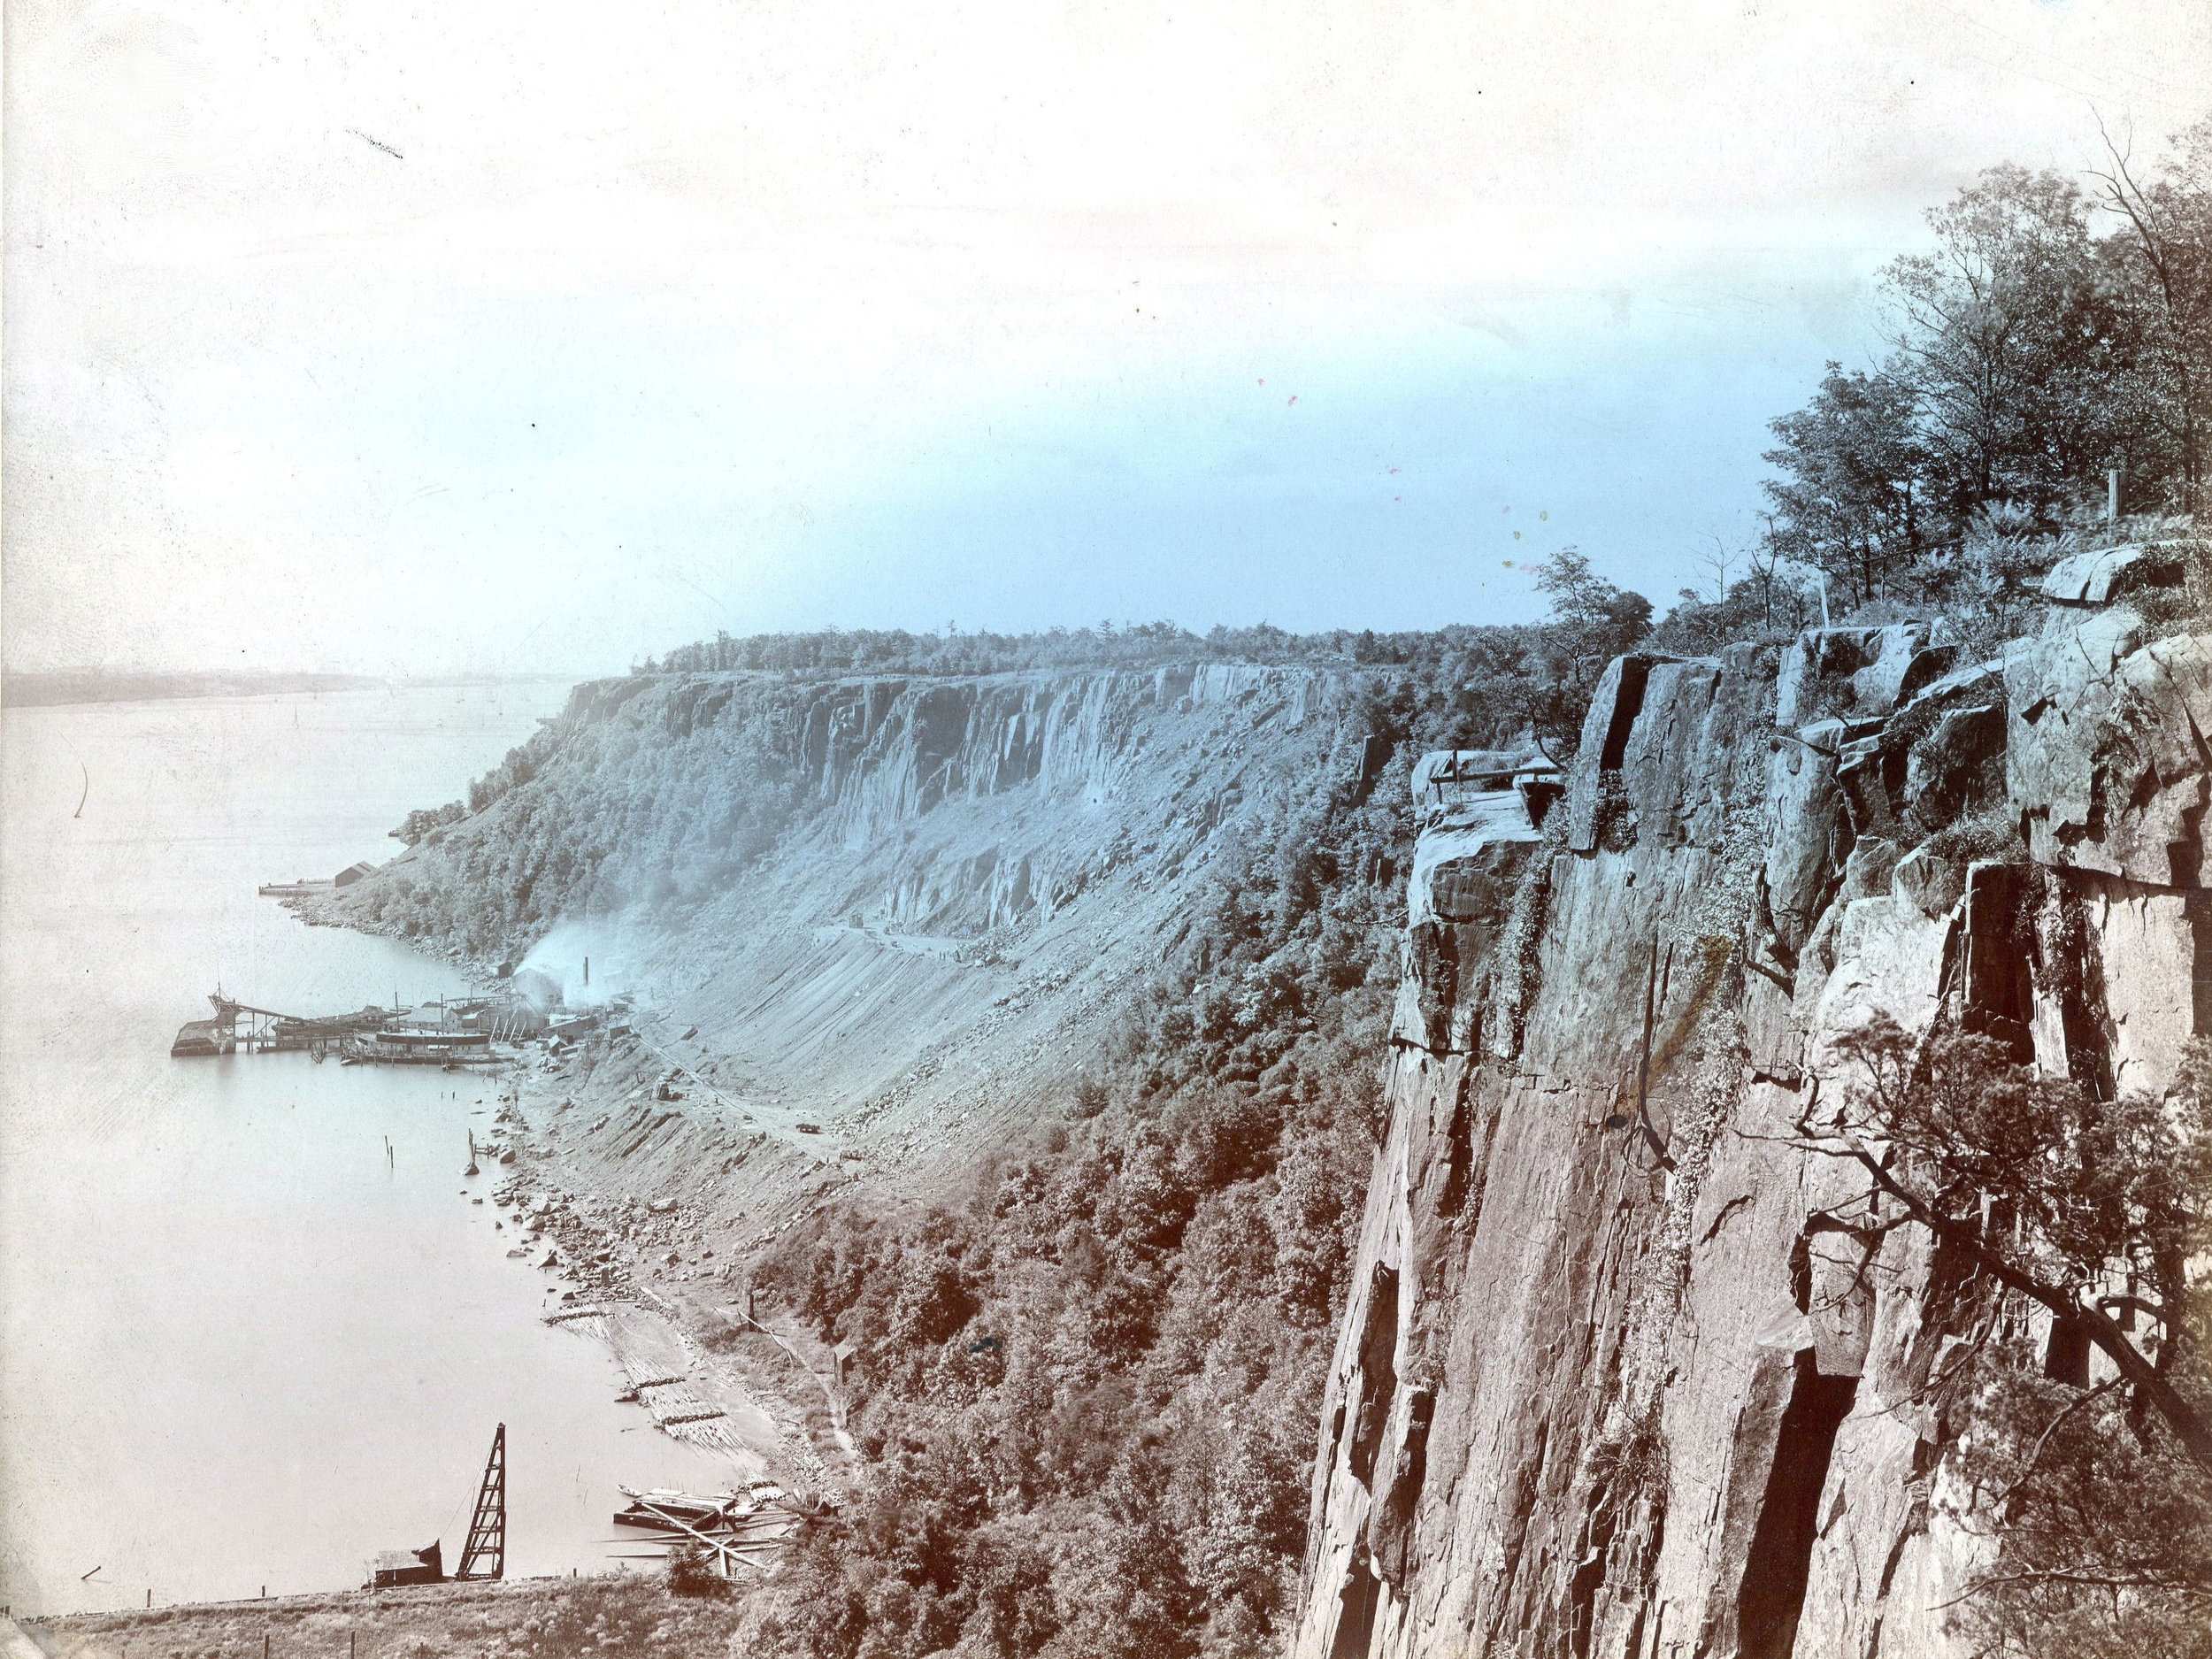 Late 1890 - Quarrying of the Palisades Cliffs was heard throughout the Hudson Valley, echoing across the River.